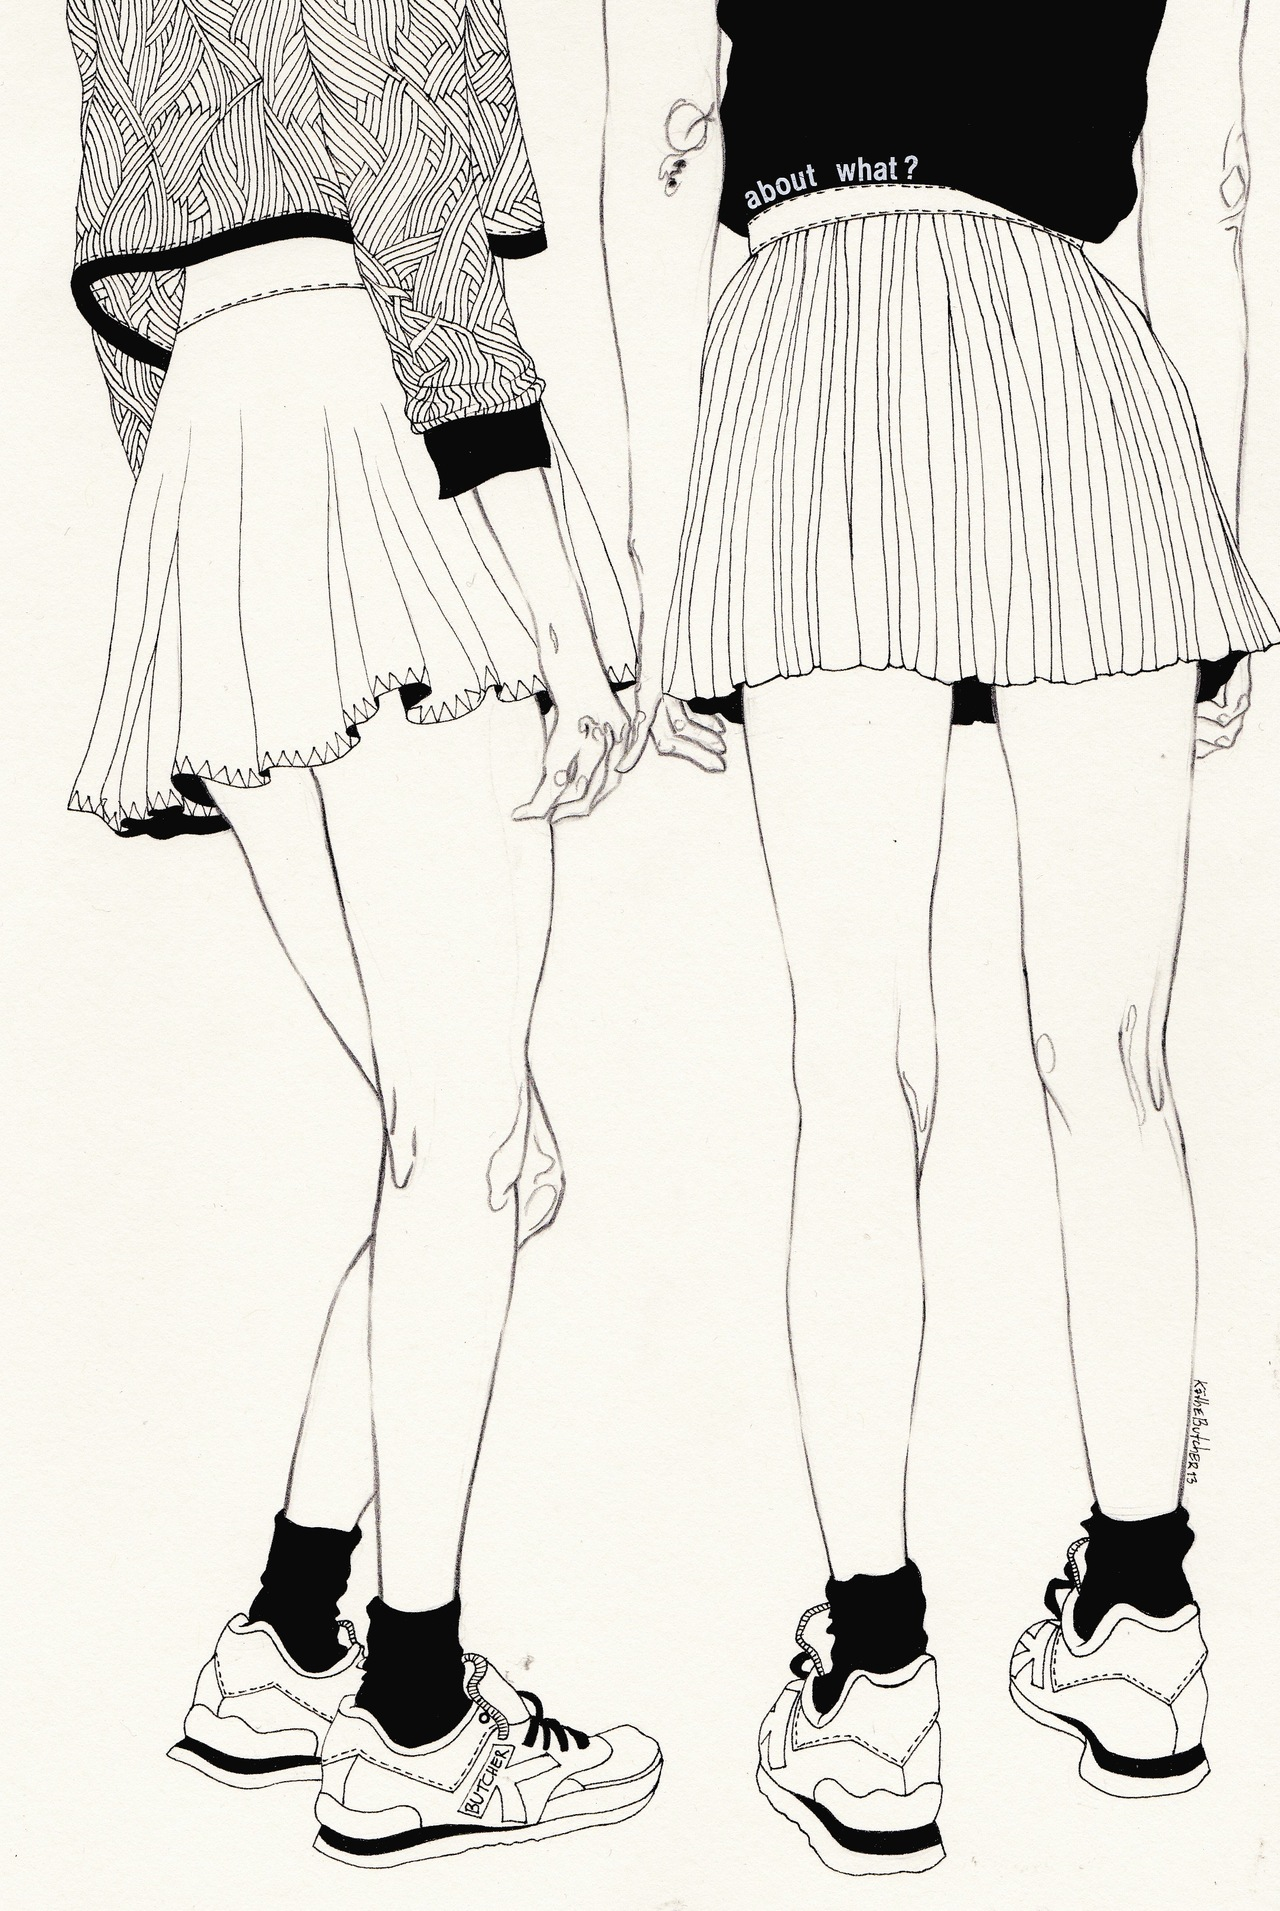 Black and White drawings from Kaethe Butcher: tumblr_mws966SyVK1sj1vz2o1_1280.jpg